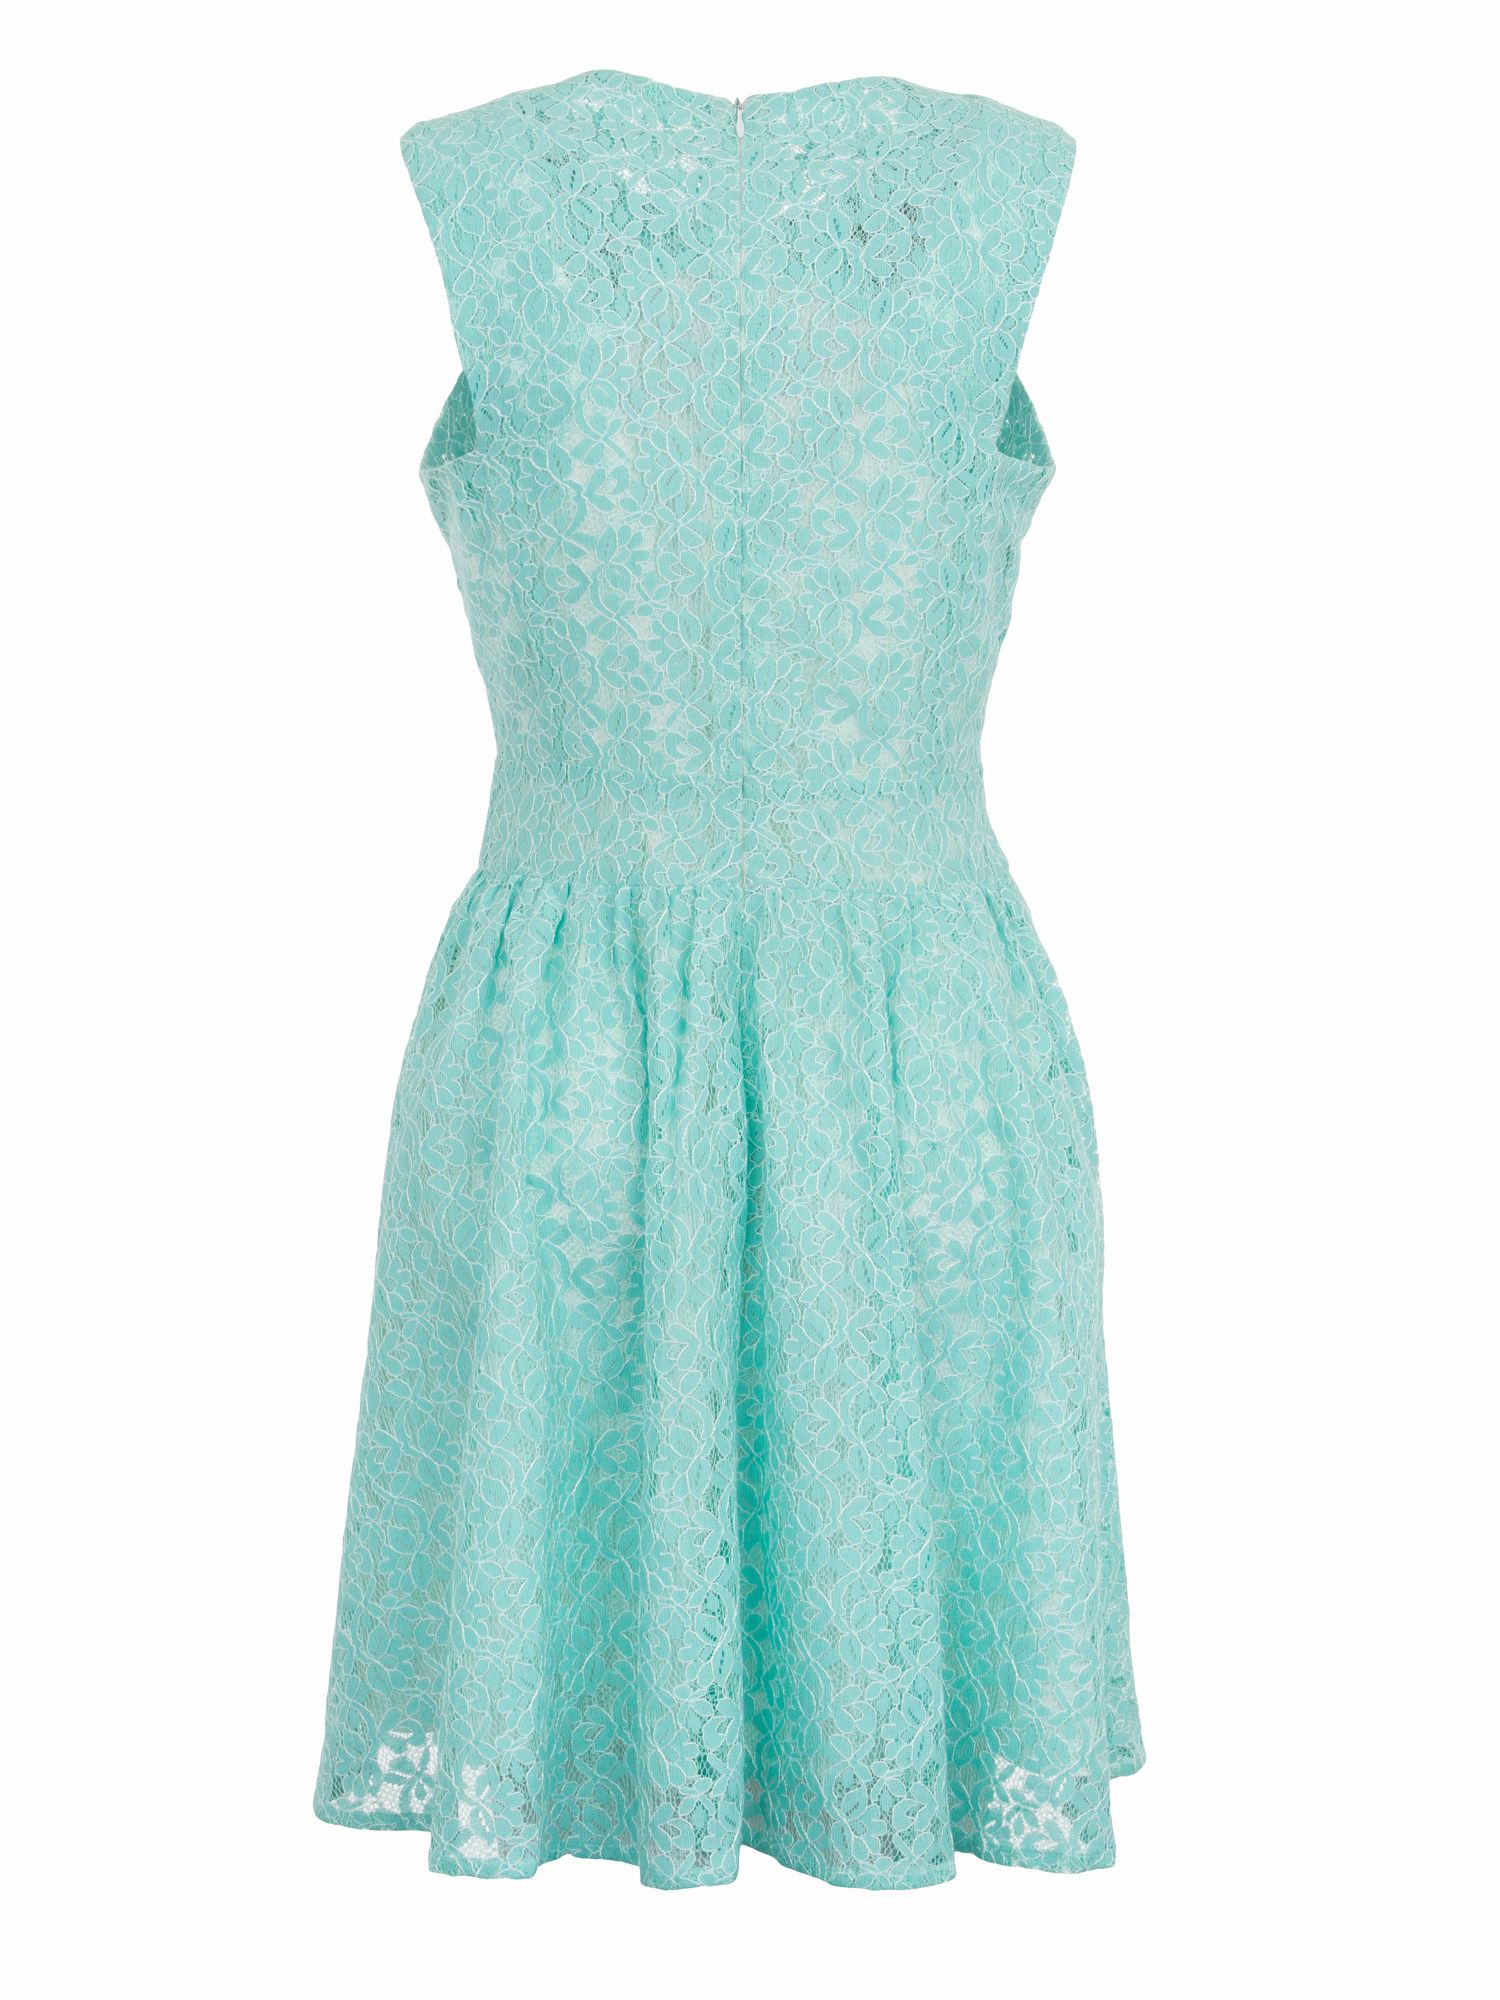 Peppermint chorded lace dress